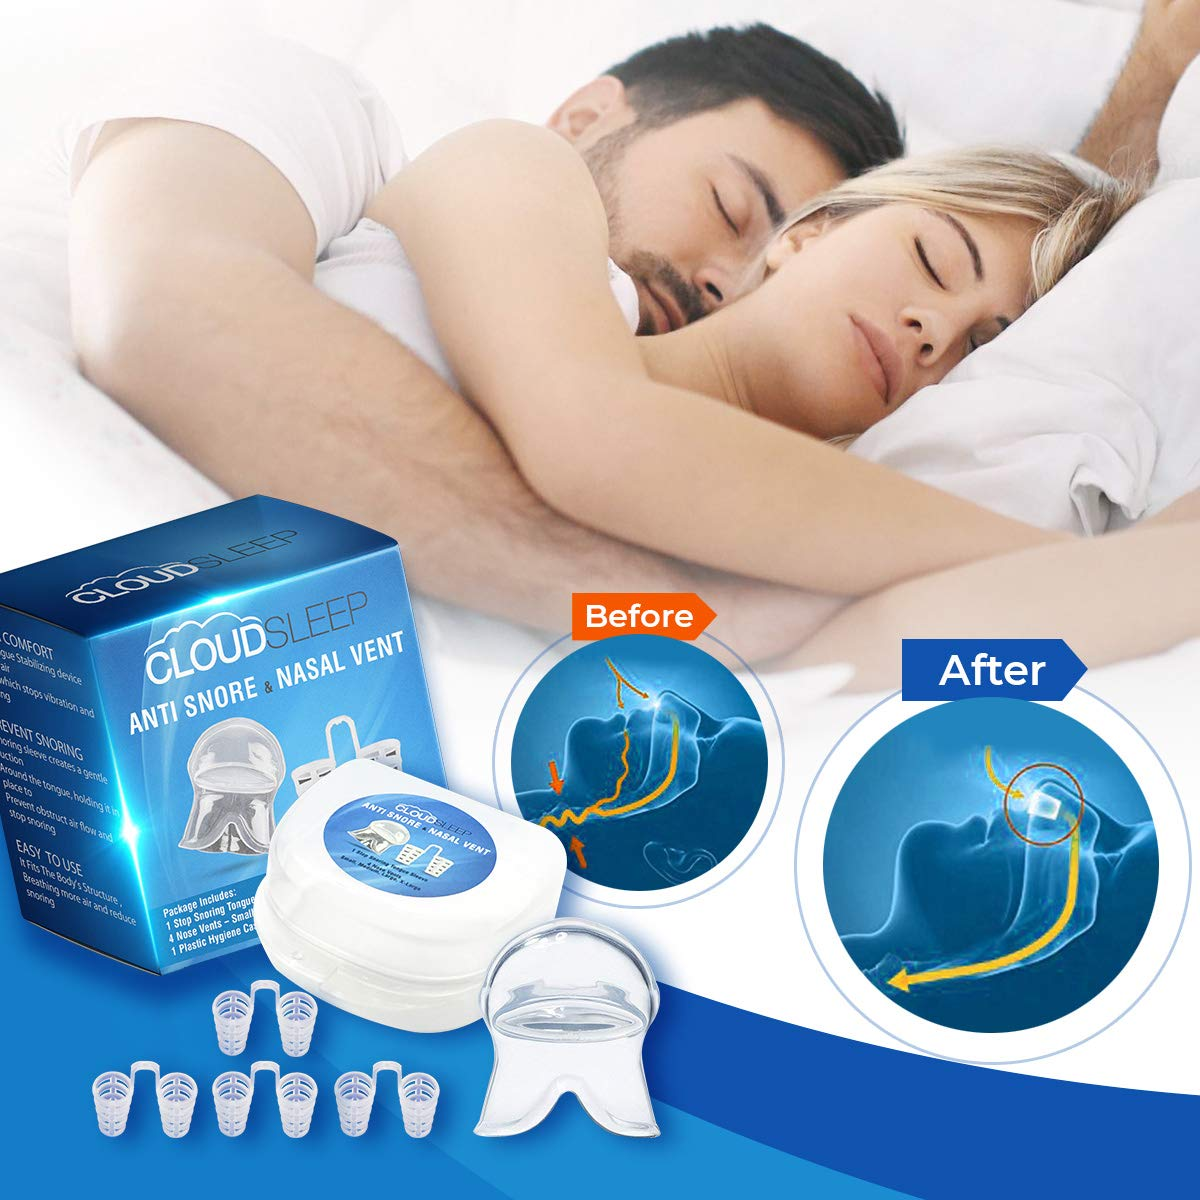 CLOUDSLEEP Anti Snoring Nose Vents Kit: 4 Pairs of Nasal Dilators in 4 Sizes + Anti Snore Mouth Guard Bundle| Easy to Use Silicone Snore Stopper Kit| Stop Snoring Solution Snoring Tongue Retainer by CLOUDSLEEP (Image #2)